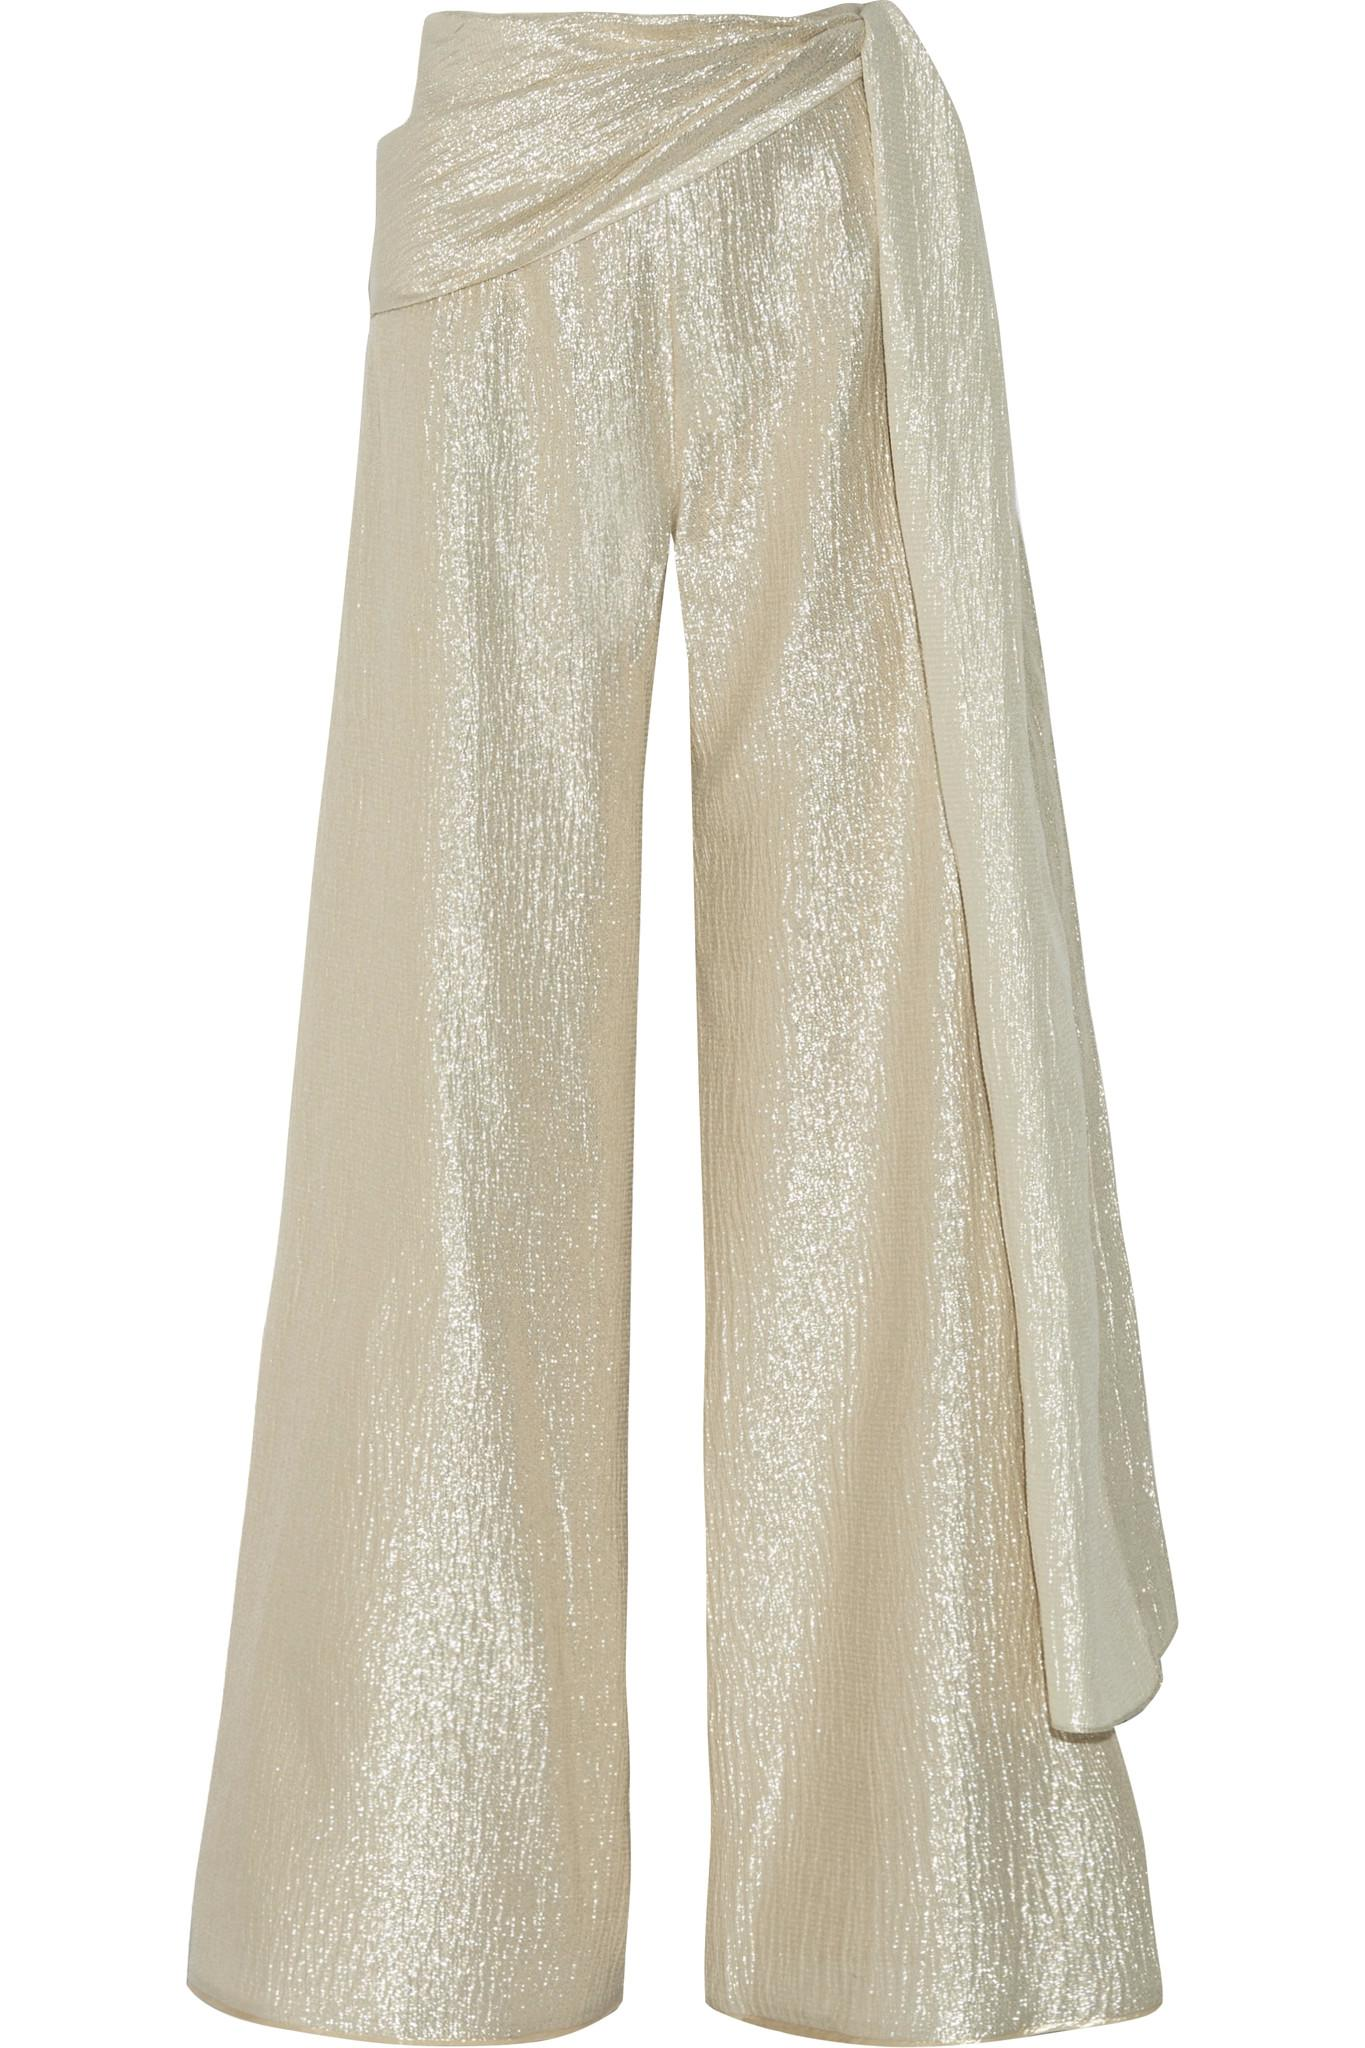 Wide Leg Pants sets itself from the previous version of the signature with a new and sleeker material than ever before. Whether it be worn for a relaxing laid-back day .